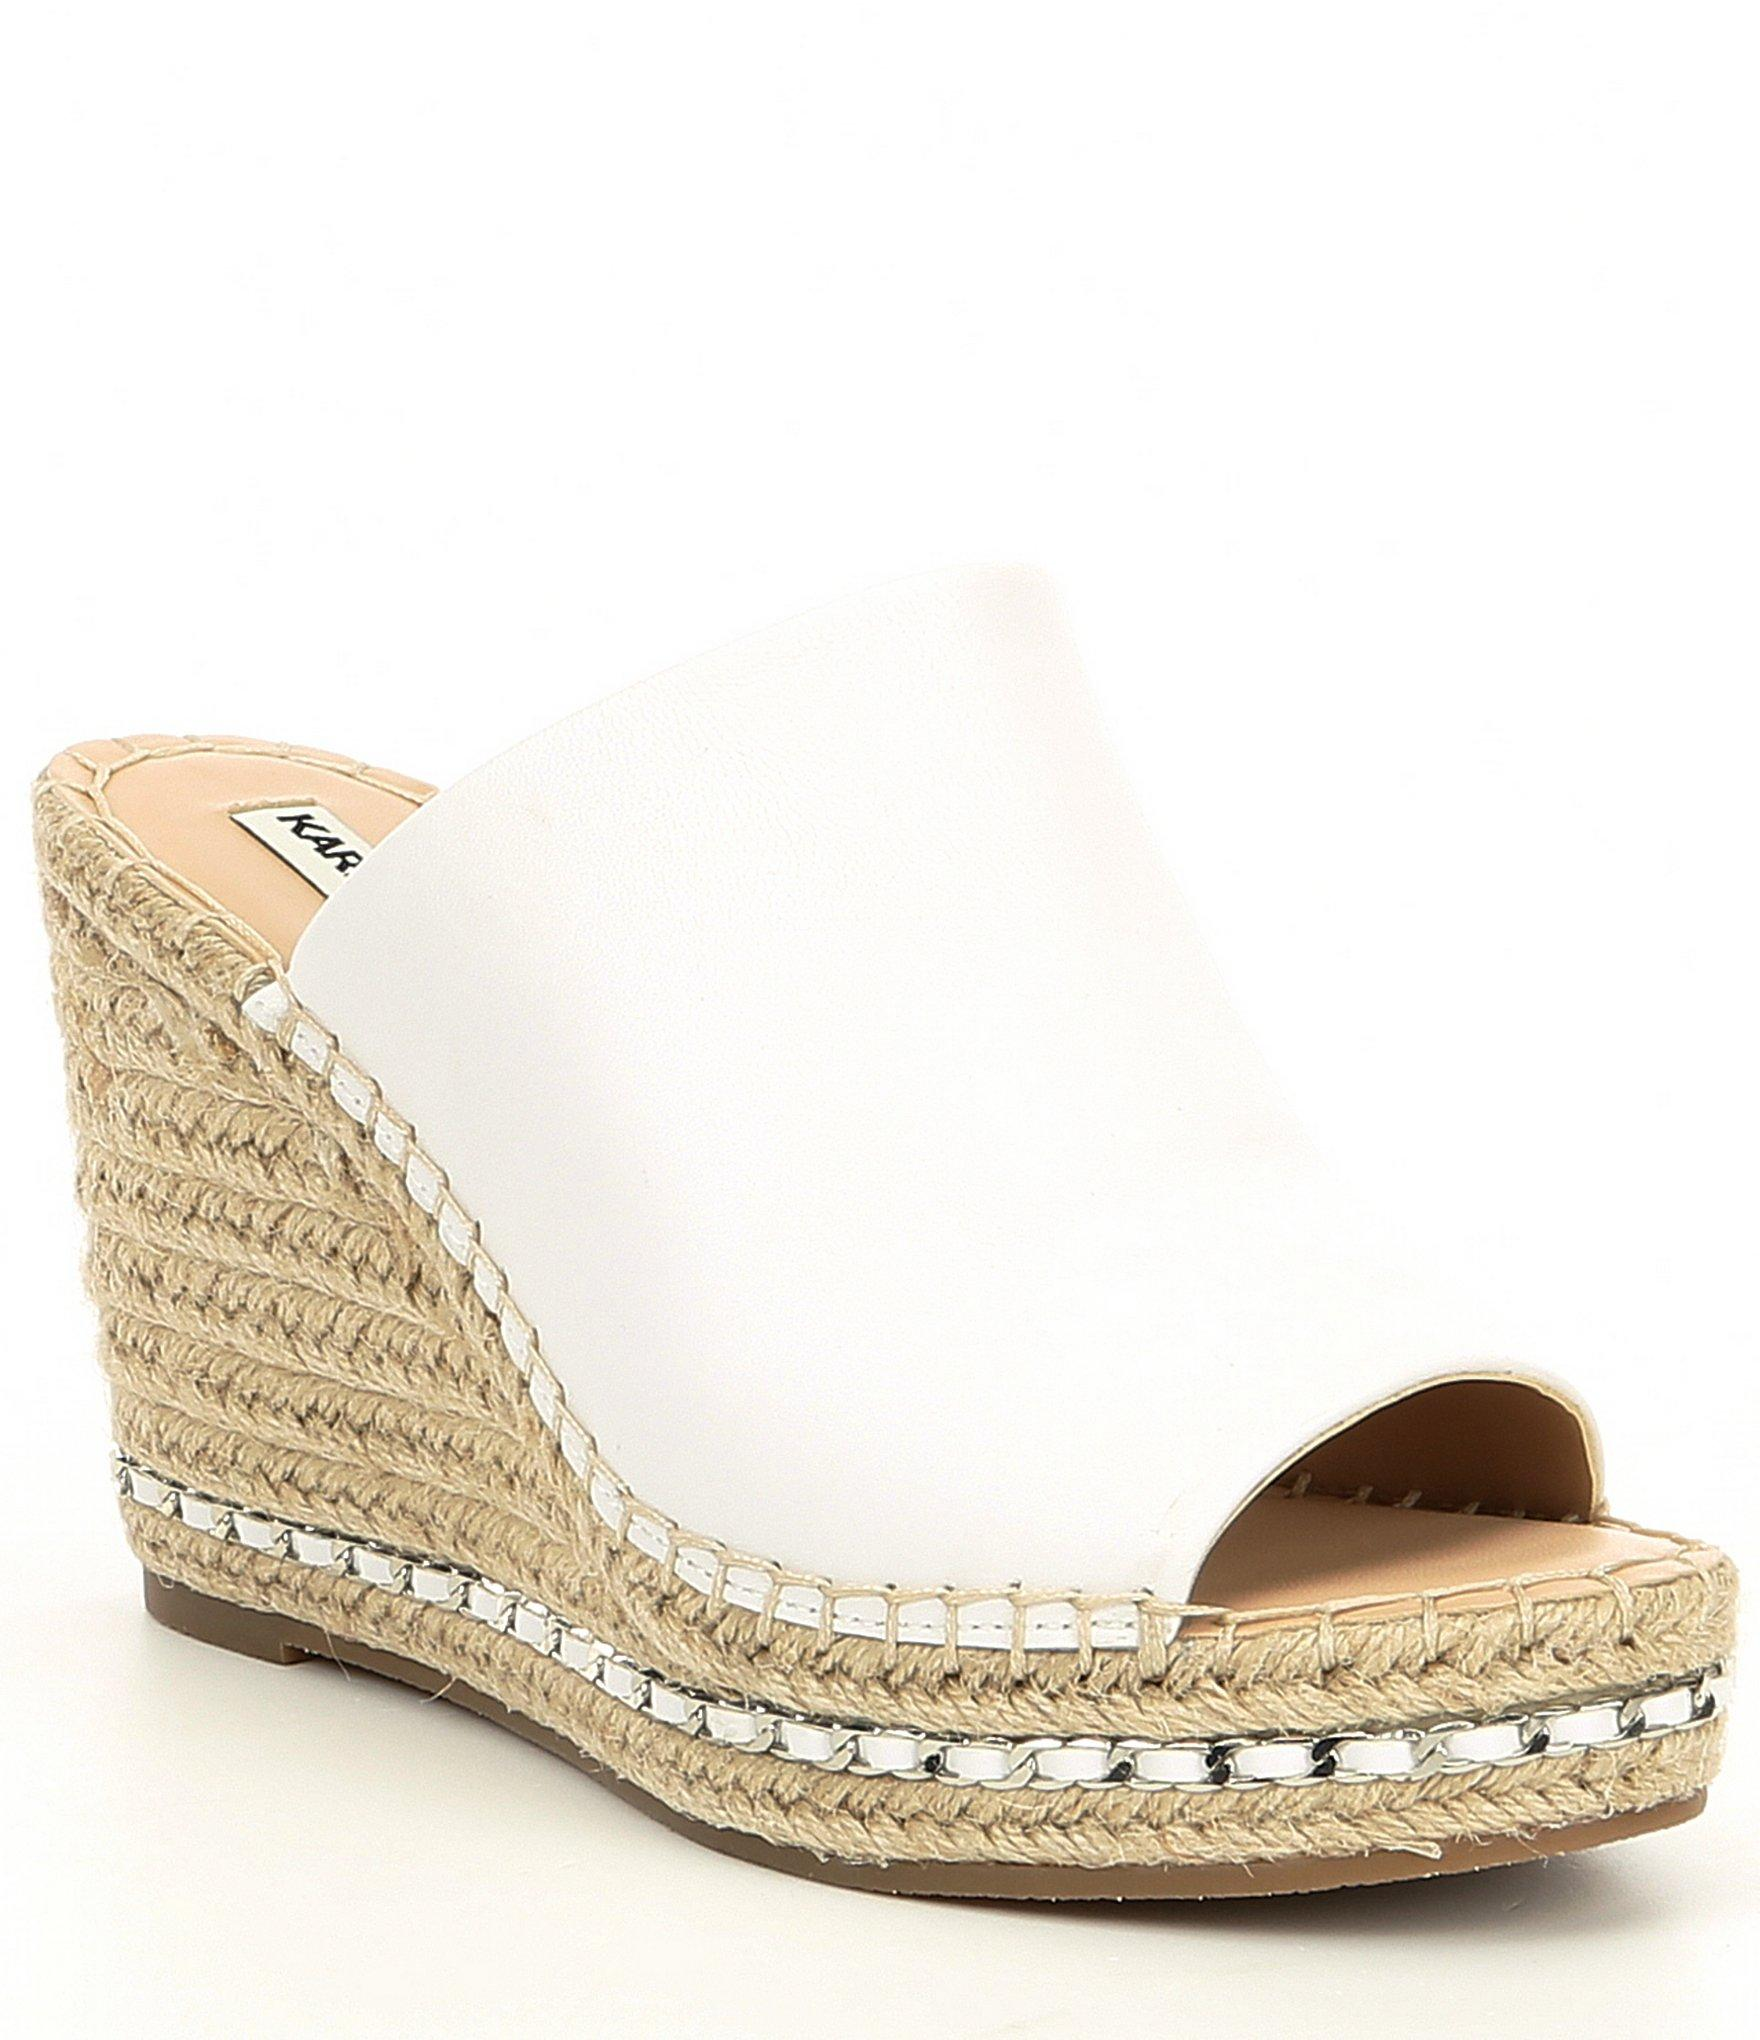 1d7fc17ce2 Lyst - Karl Lagerfeld Carina Leather Espadrille Wedges in White